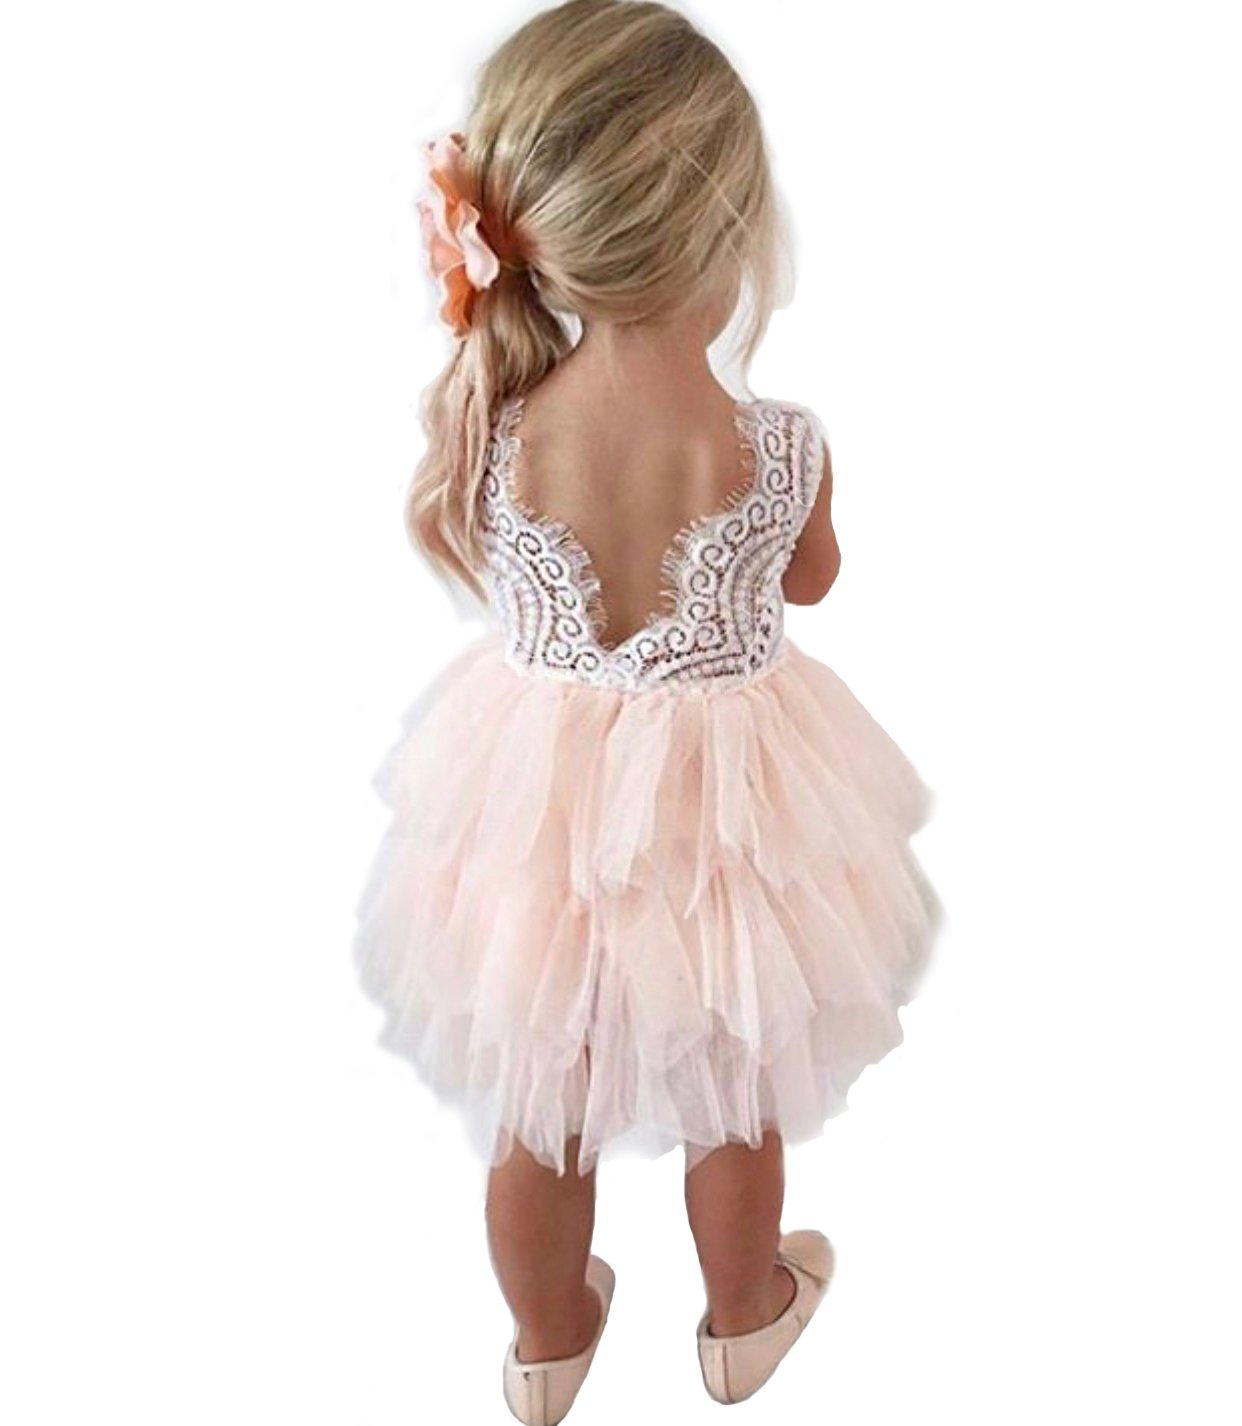 Backless A-line Lace Back Flower Girl Dress (0-6 Month, Pink)